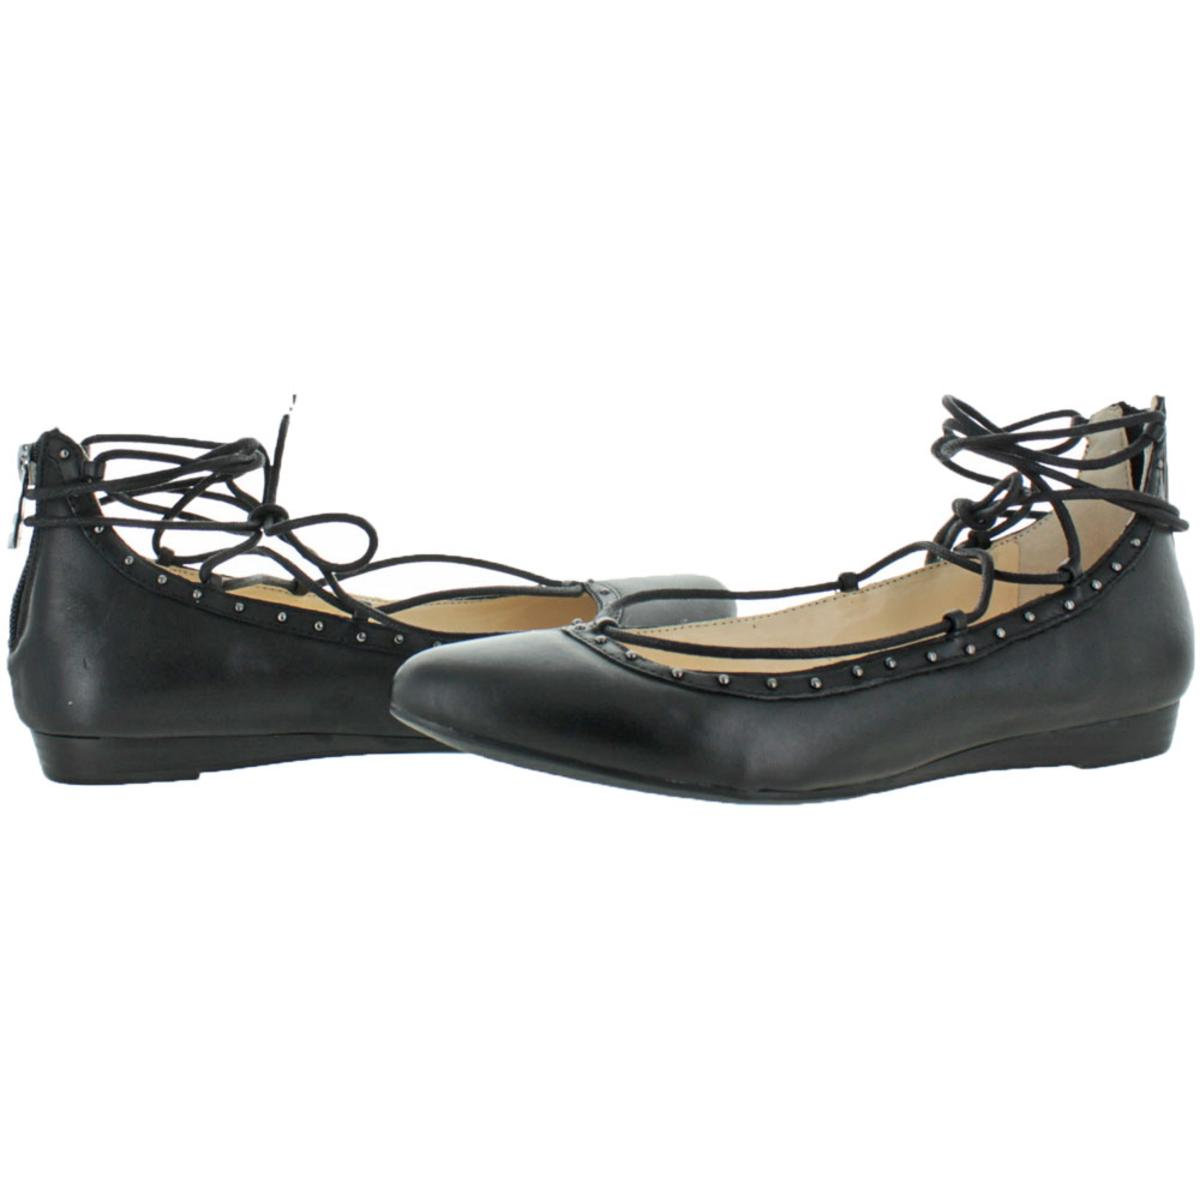 Jessica-Simpson-Women-039-s-Libra-Leather-Pointed-Toe-Ballet-Flat thumbnail 6